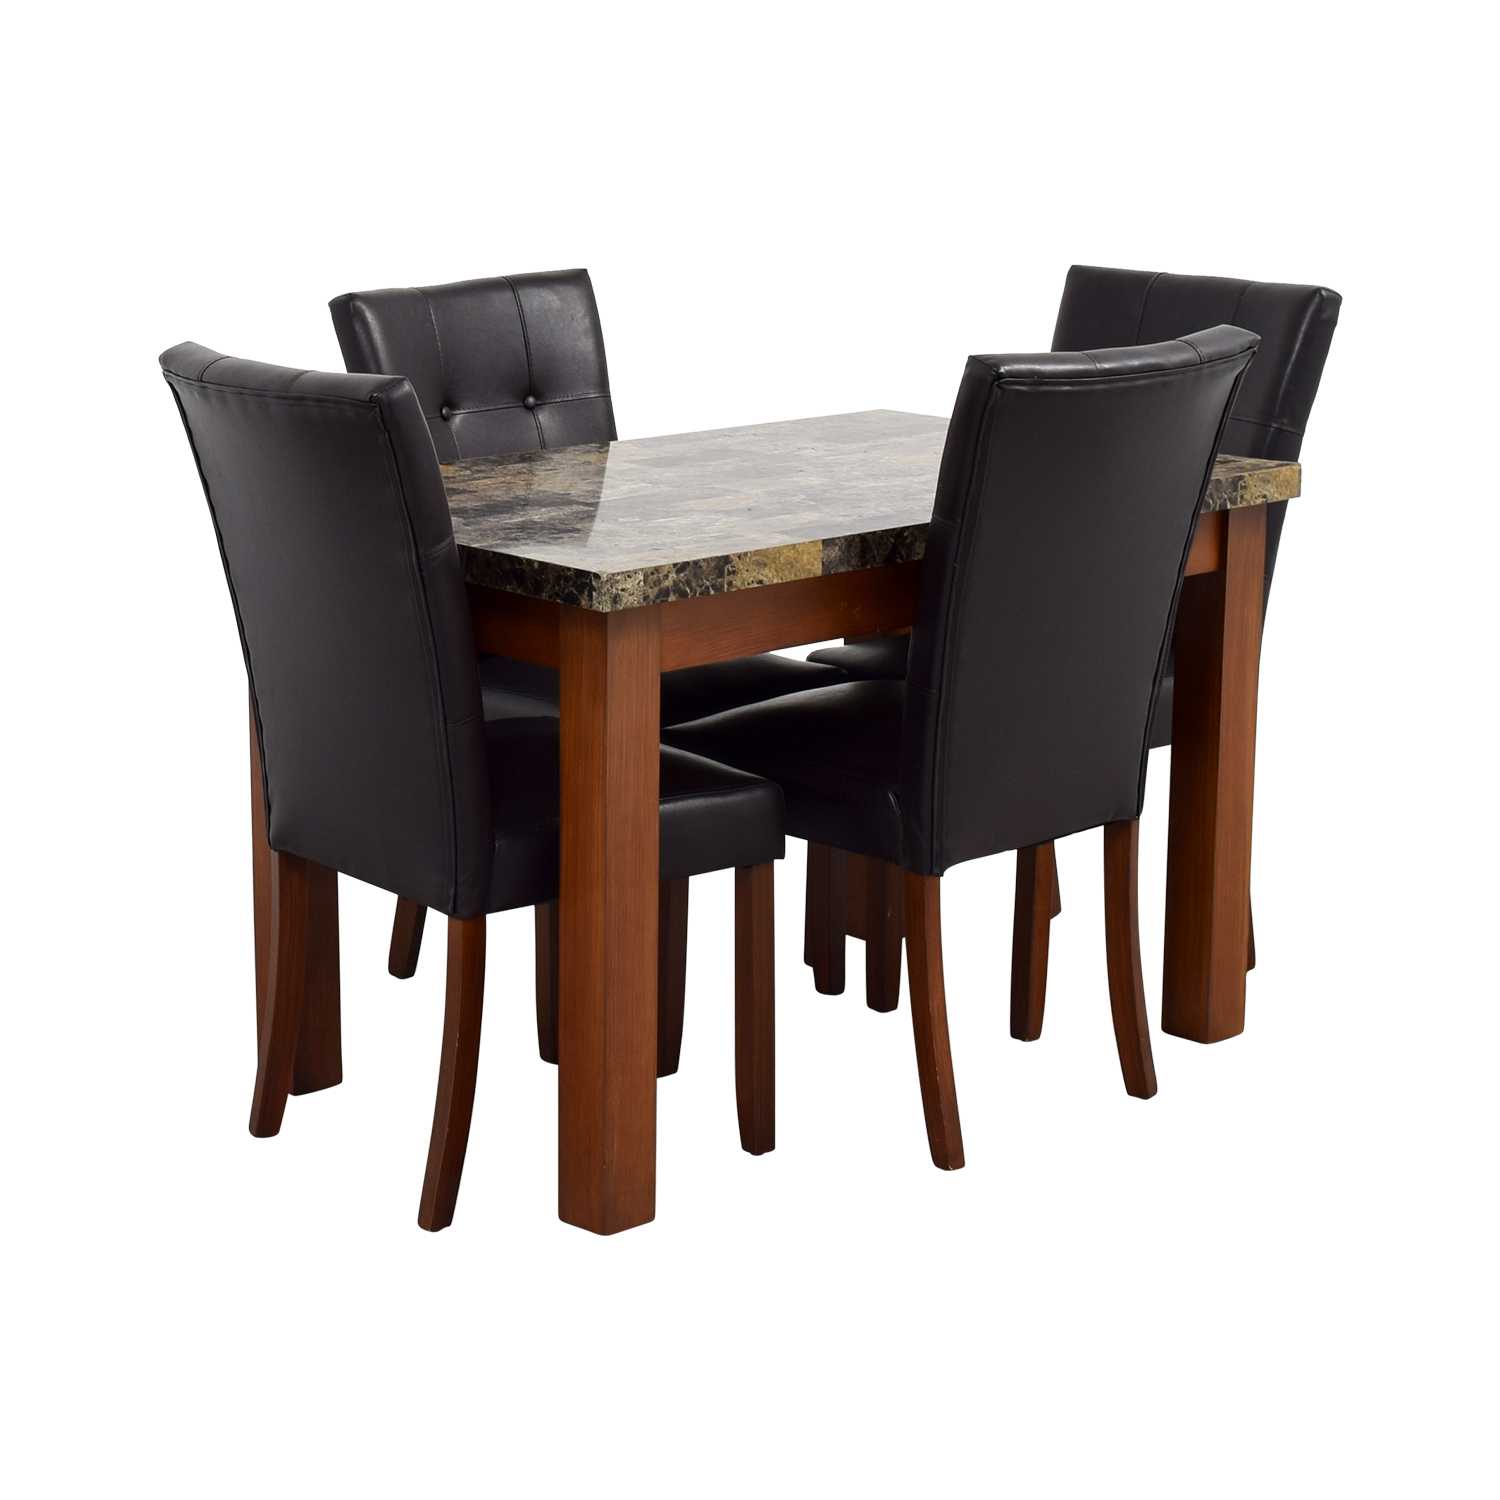 Charmant 62% OFF   Faux Marble Dining Table With Brown Tufted Leather Chairs / Tables